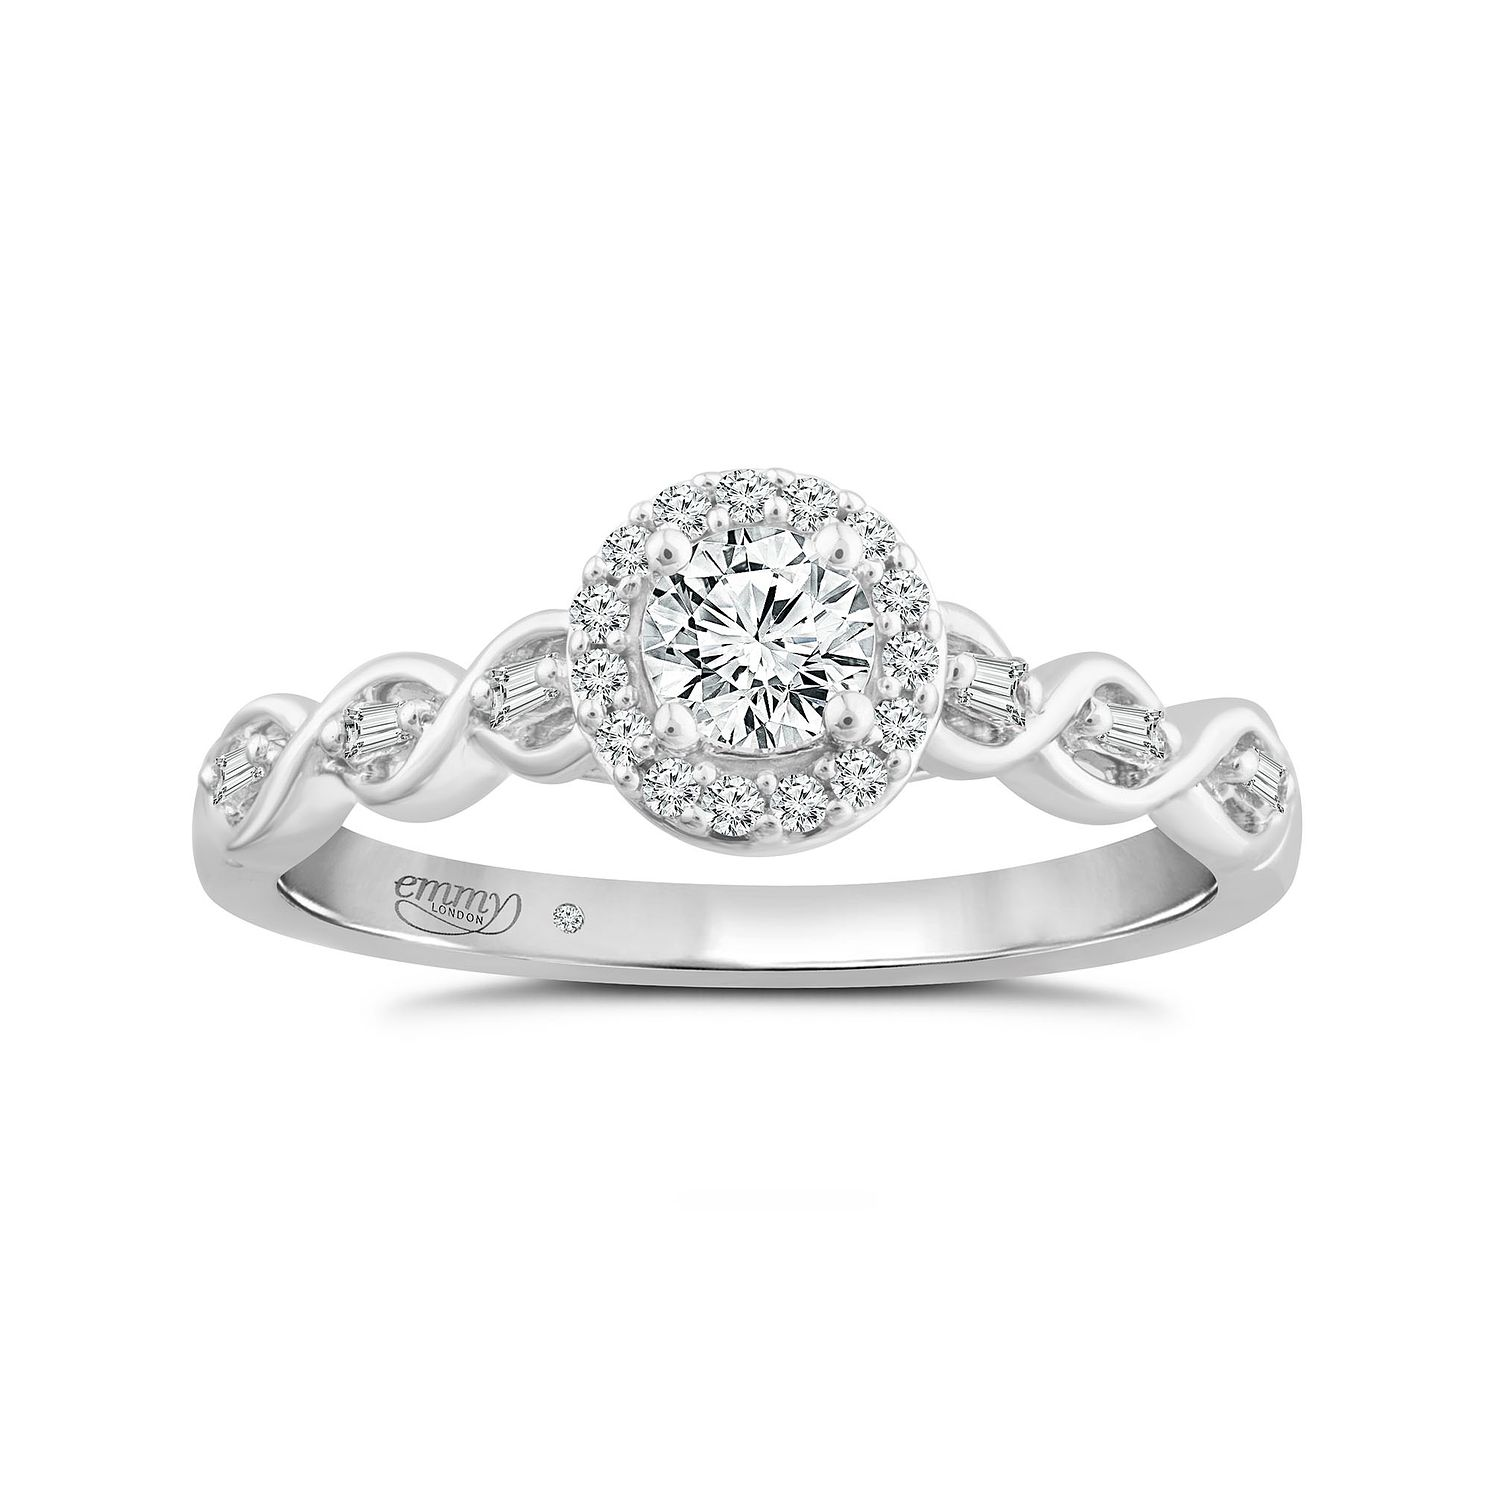 Emmy London 18ct White Gold 0.33ct Total Diamond Twist Ring - Product number 4571800